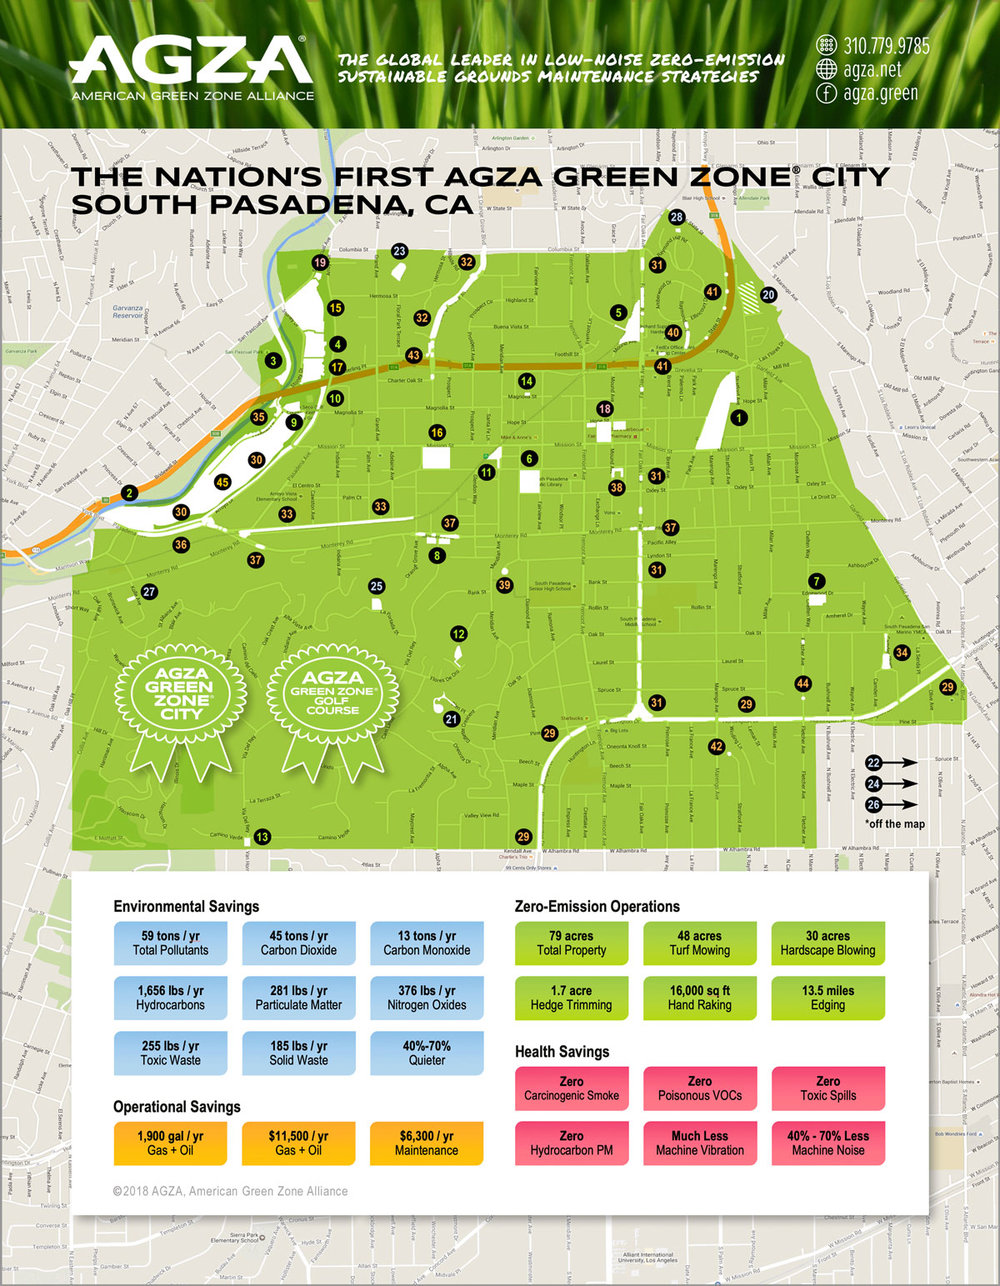 AGZA_Green_Zone_Certification_p02_OUTLINE.jpg